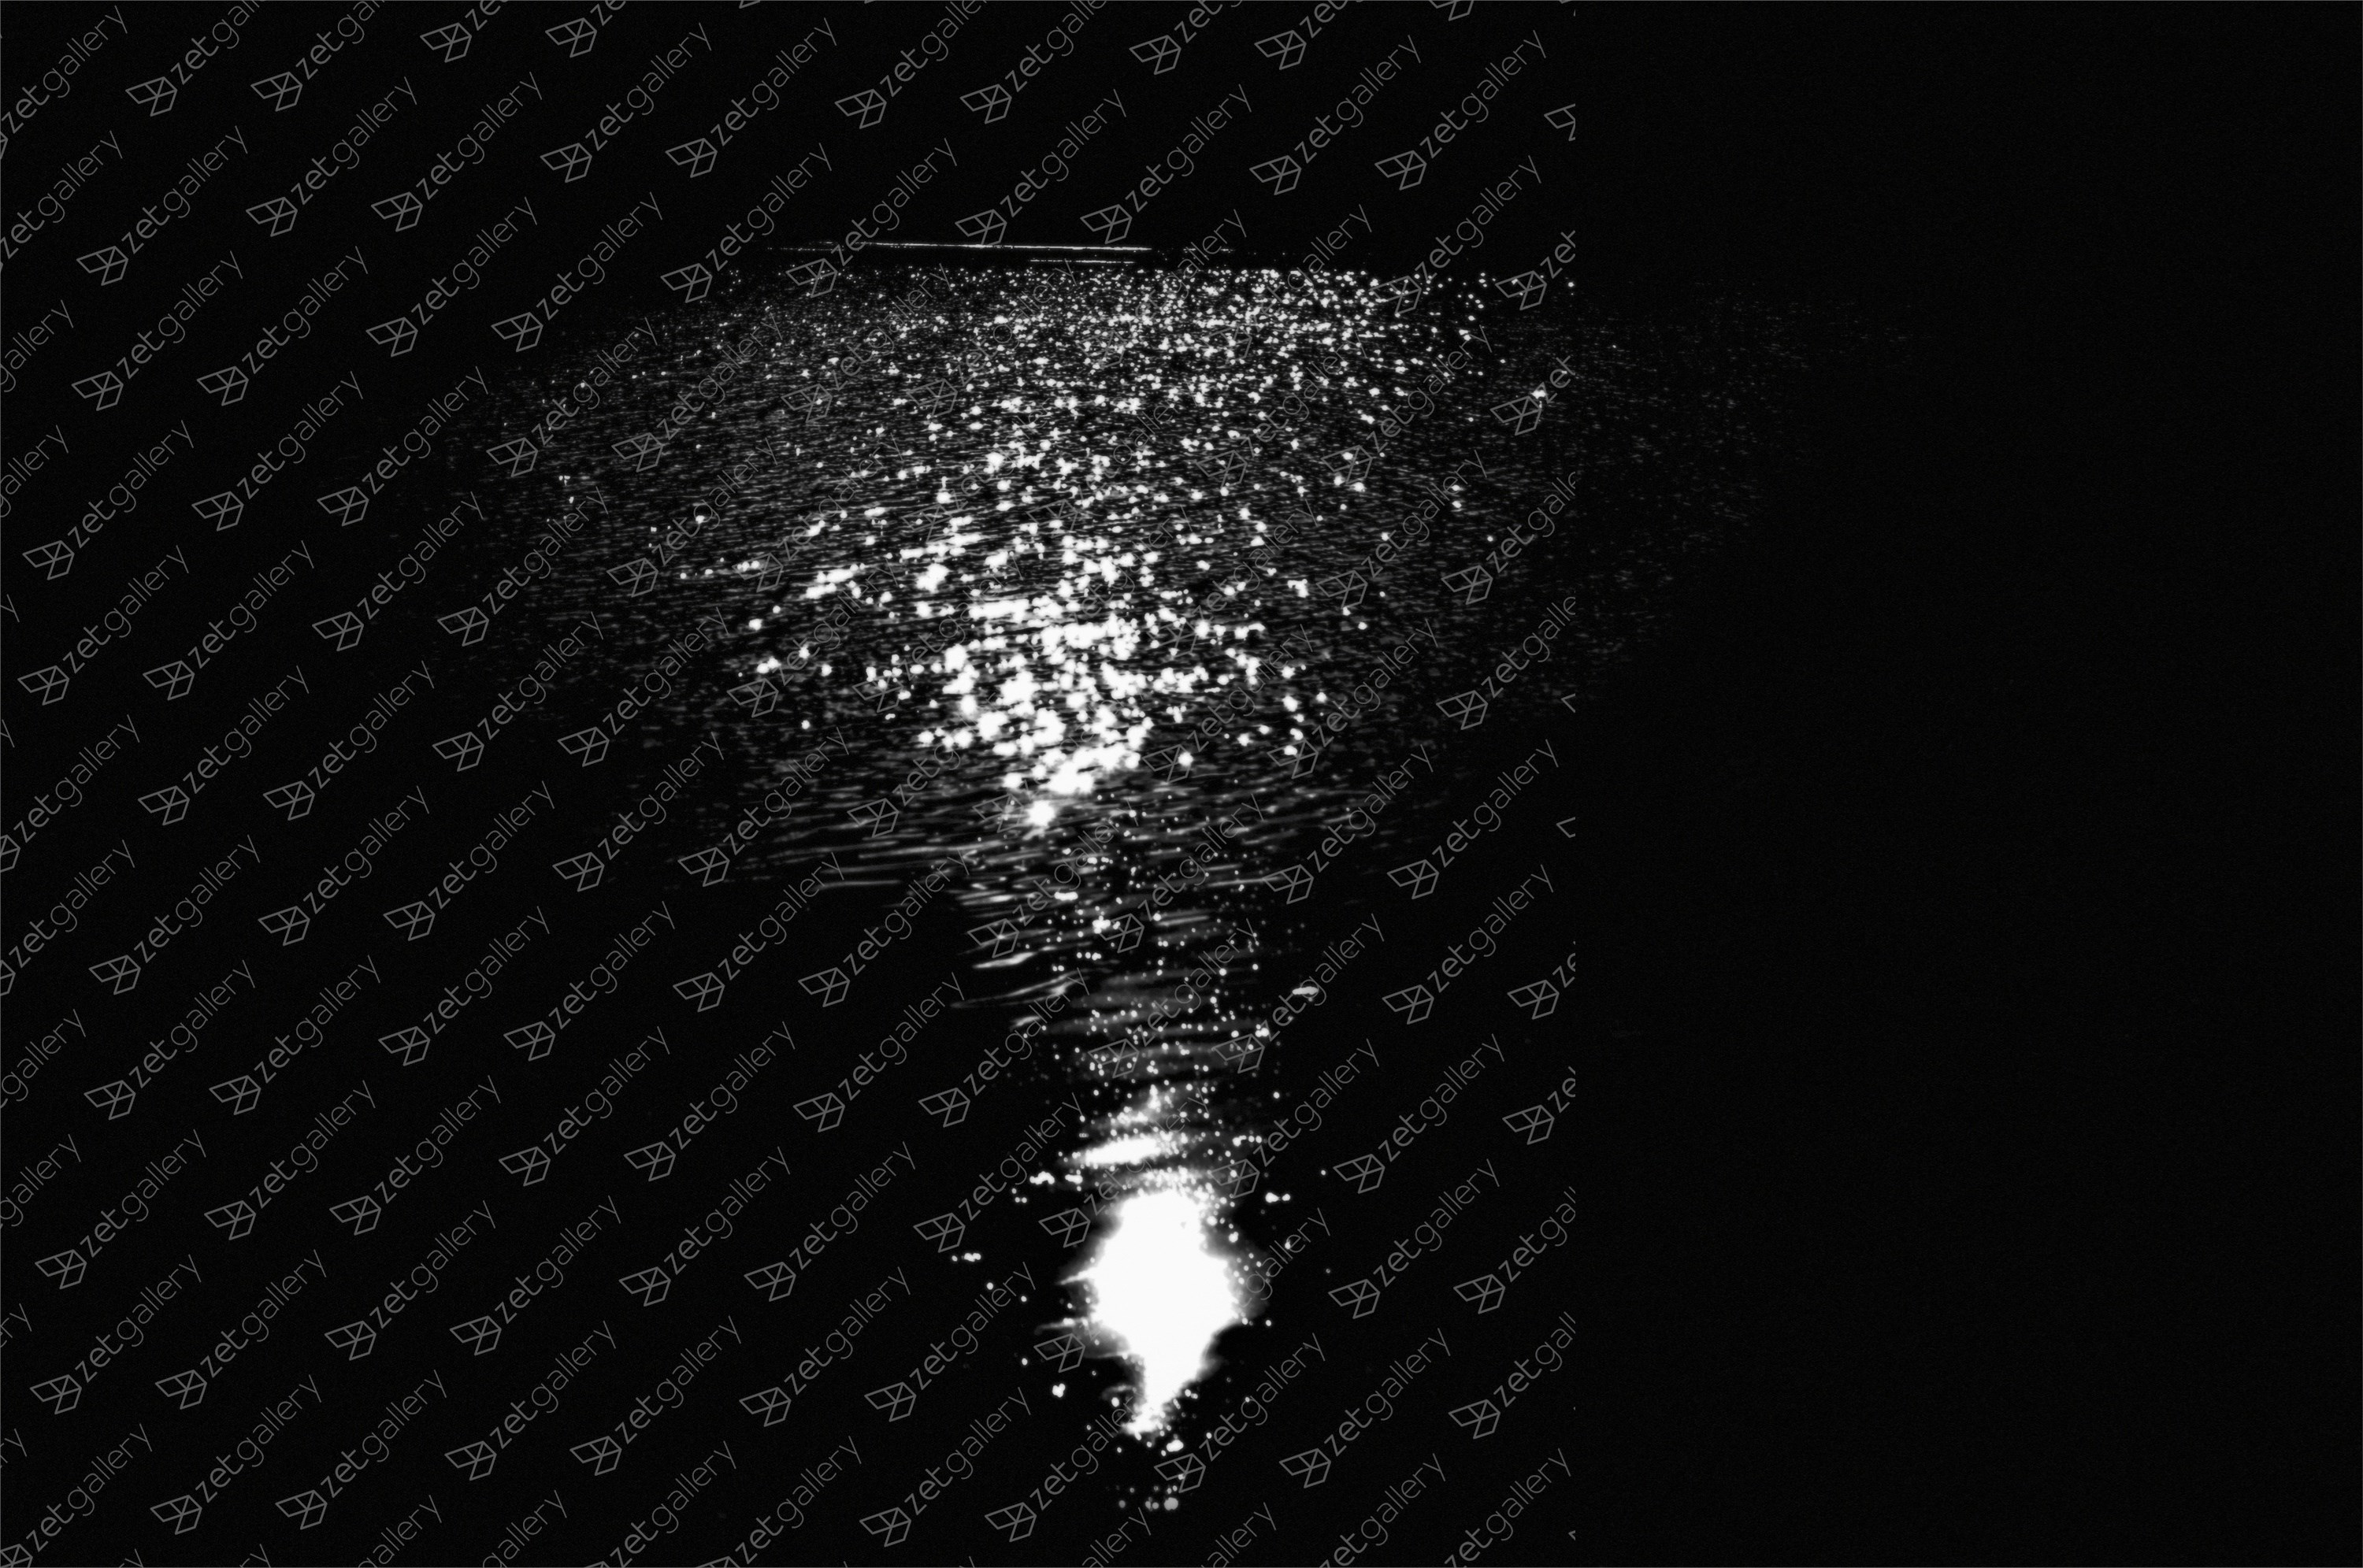 Night by the river, original B&W Digital Photography by Svetlana Neskovska